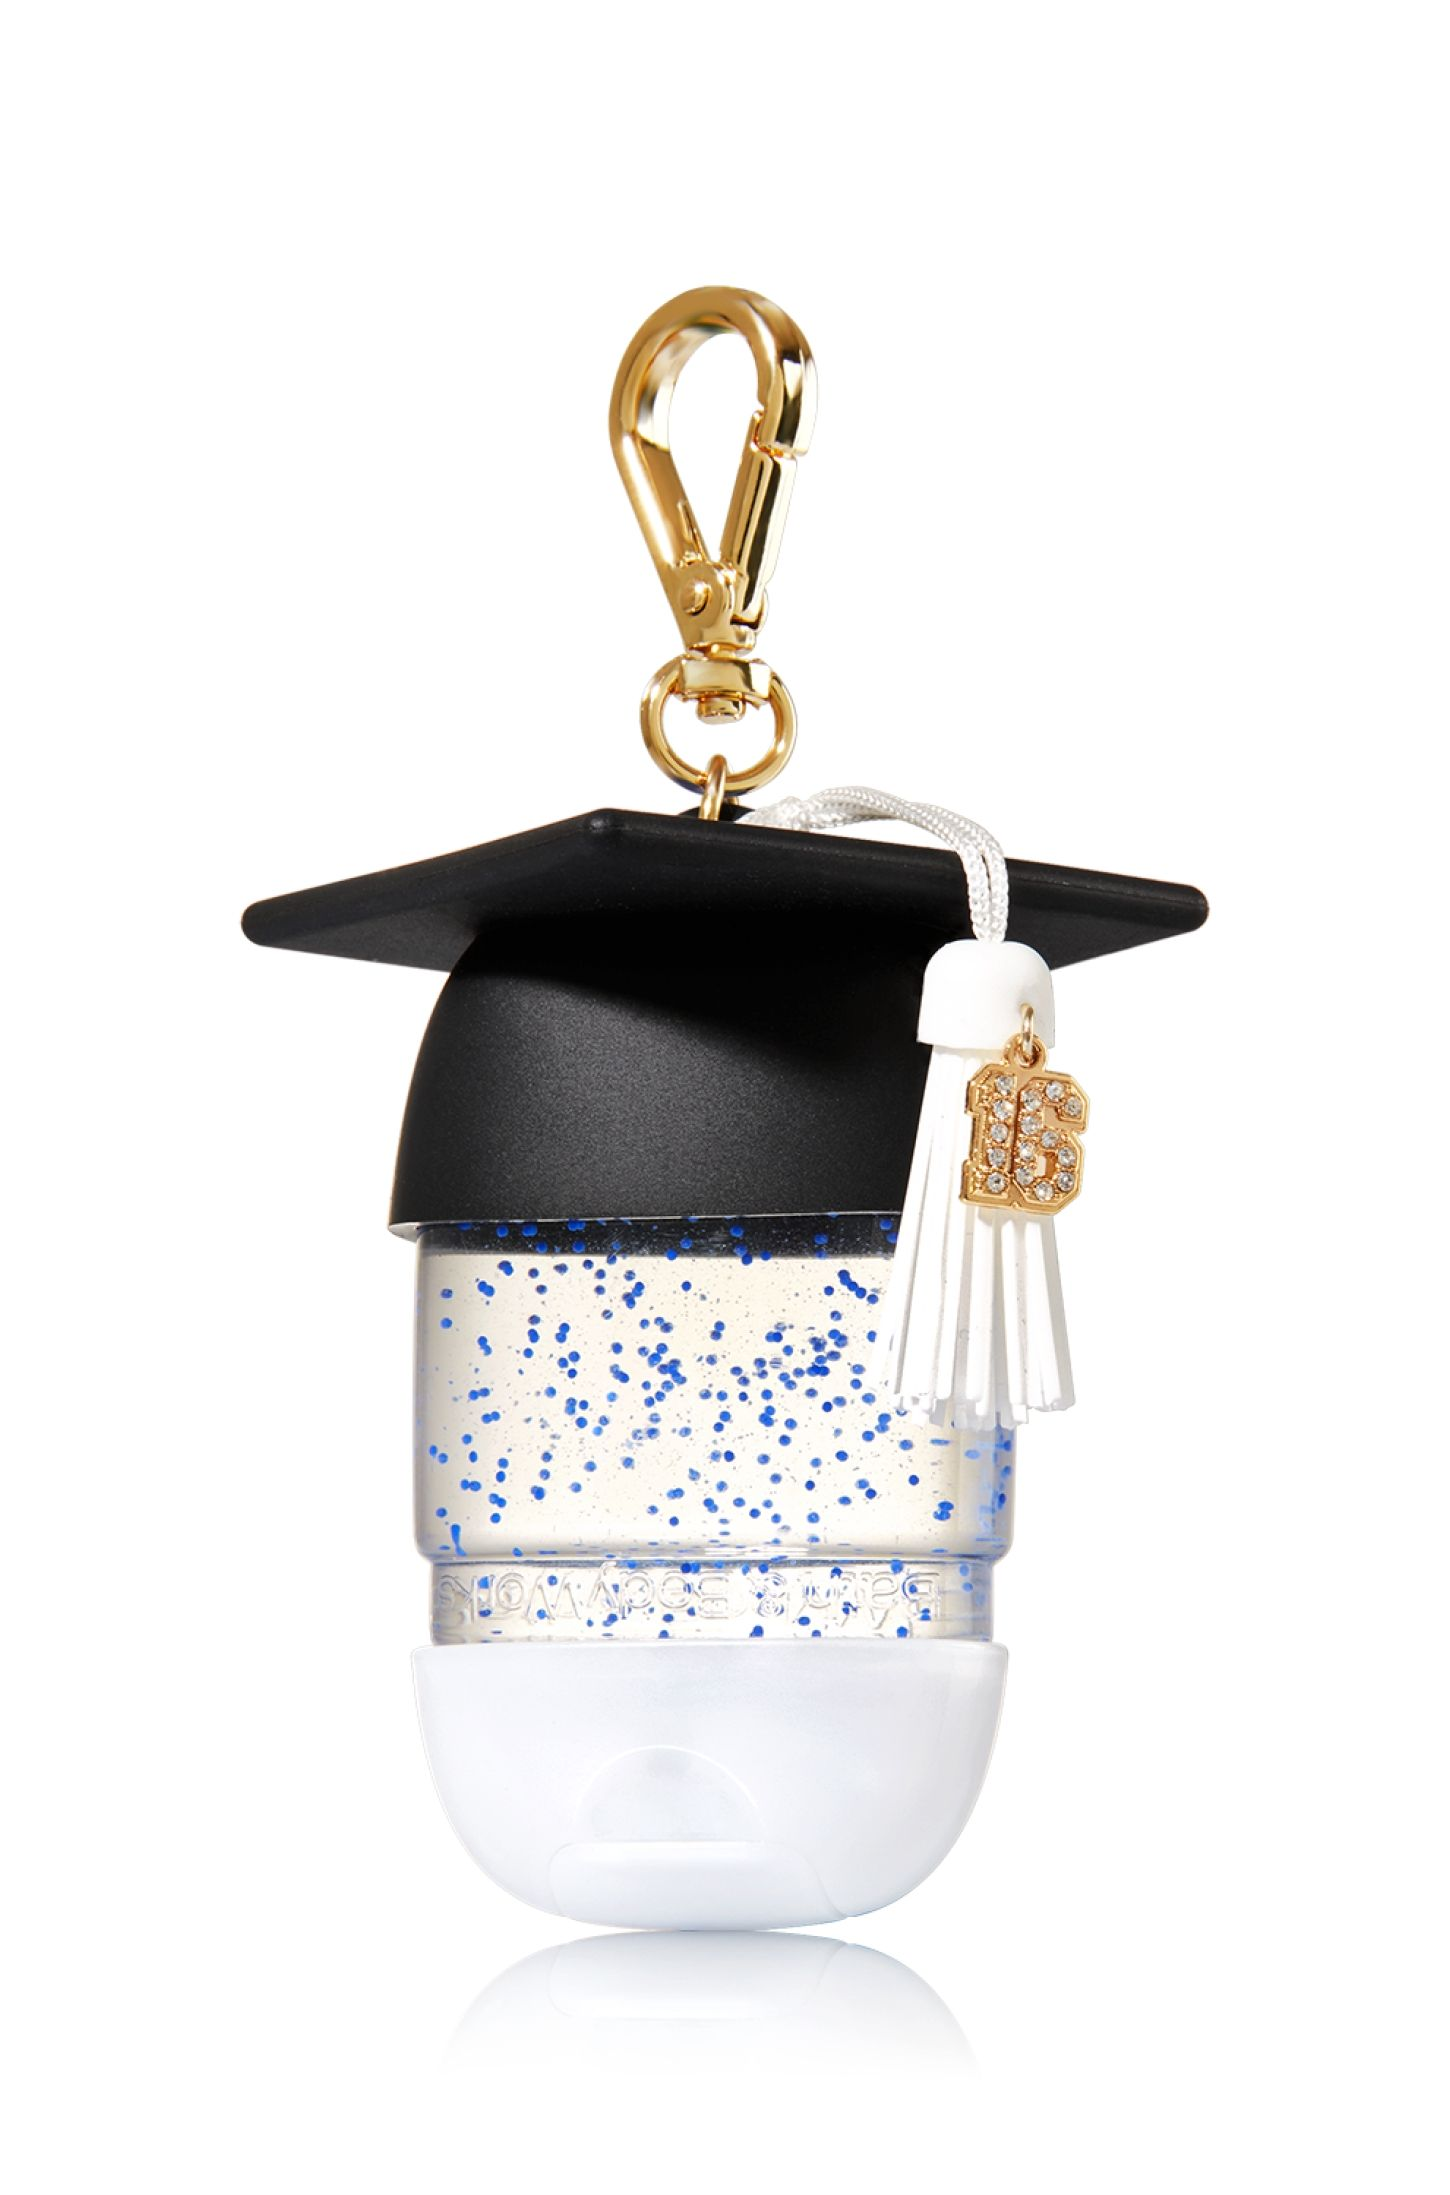 Graduation Cap Pocketbac Holder Bath Body Works Bath Body